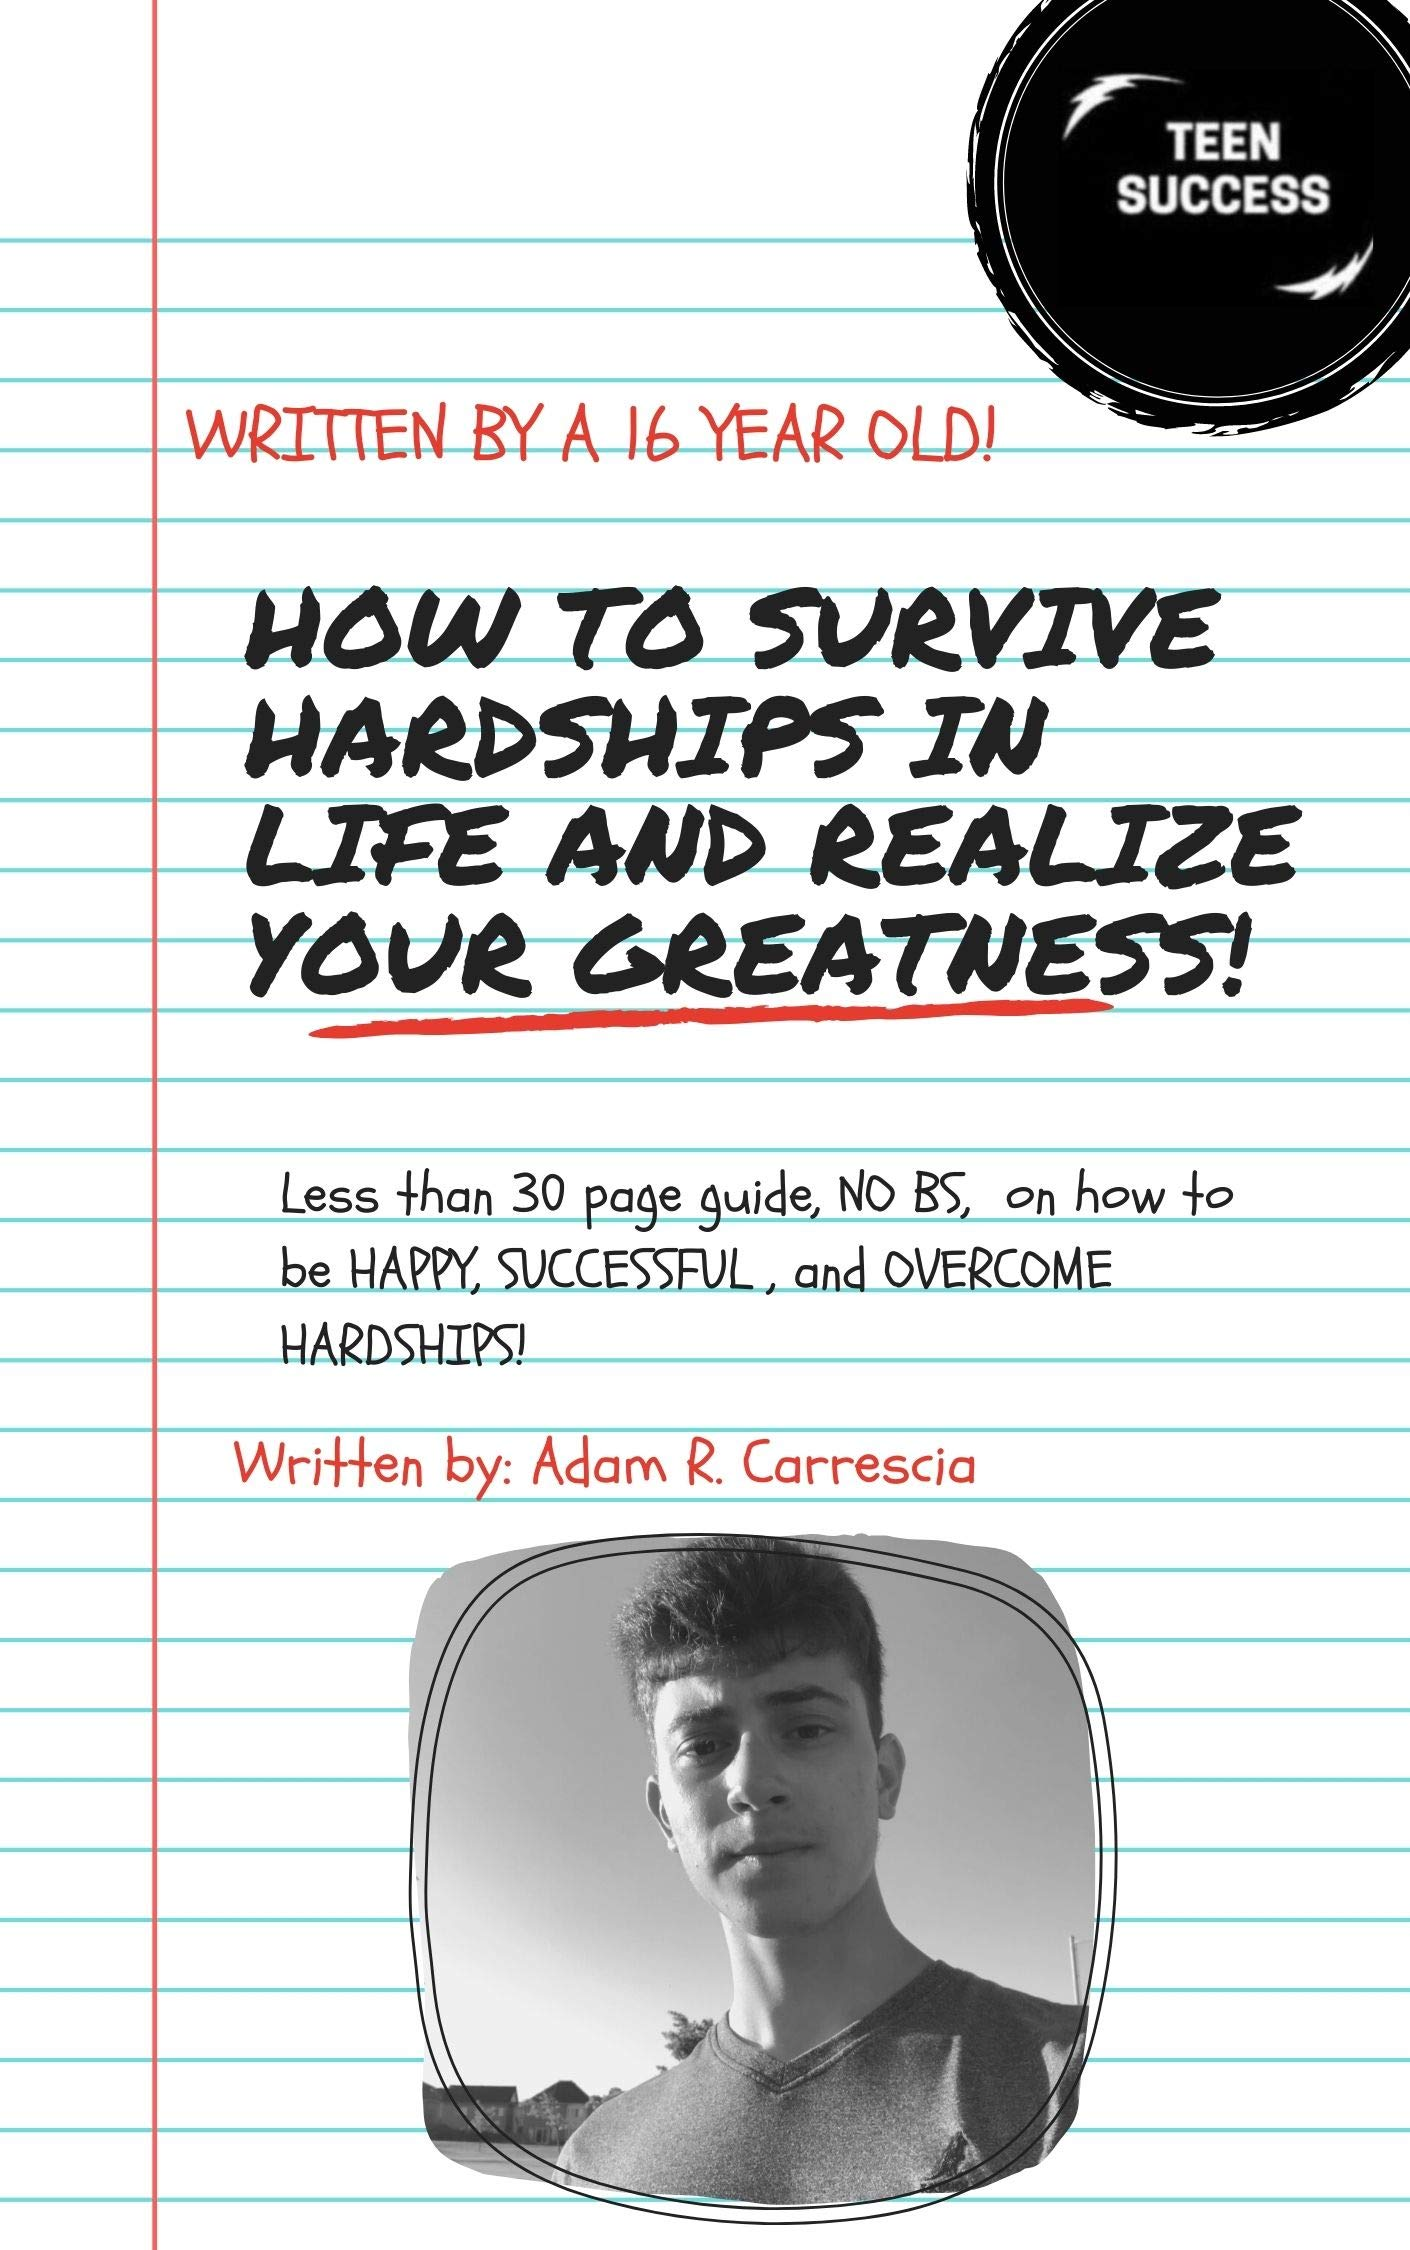 How to Survive Hardships in Life and Realize your Greatness: Written by a 16-year-old. less than 30 page guide, NO BS, on how to be happy, successful, and overcome hardships!